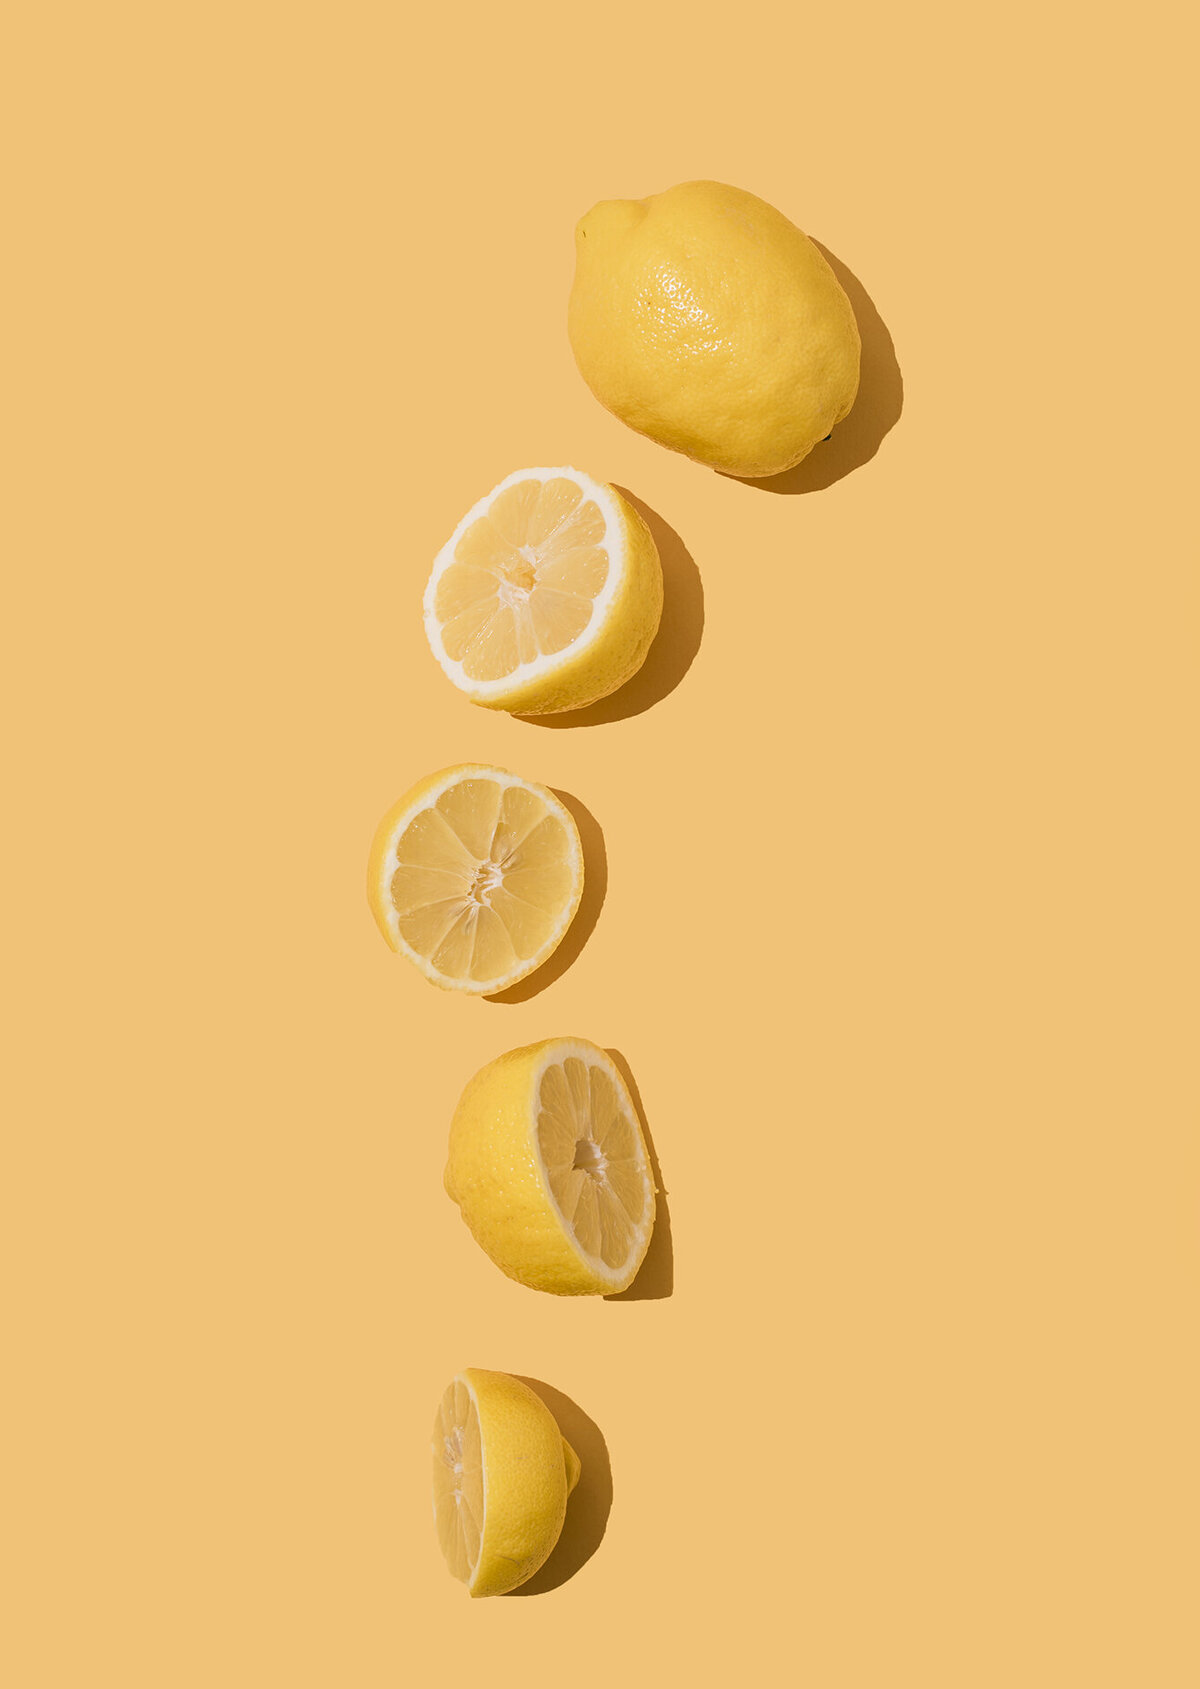 los angeles food photographer produce photography lemons